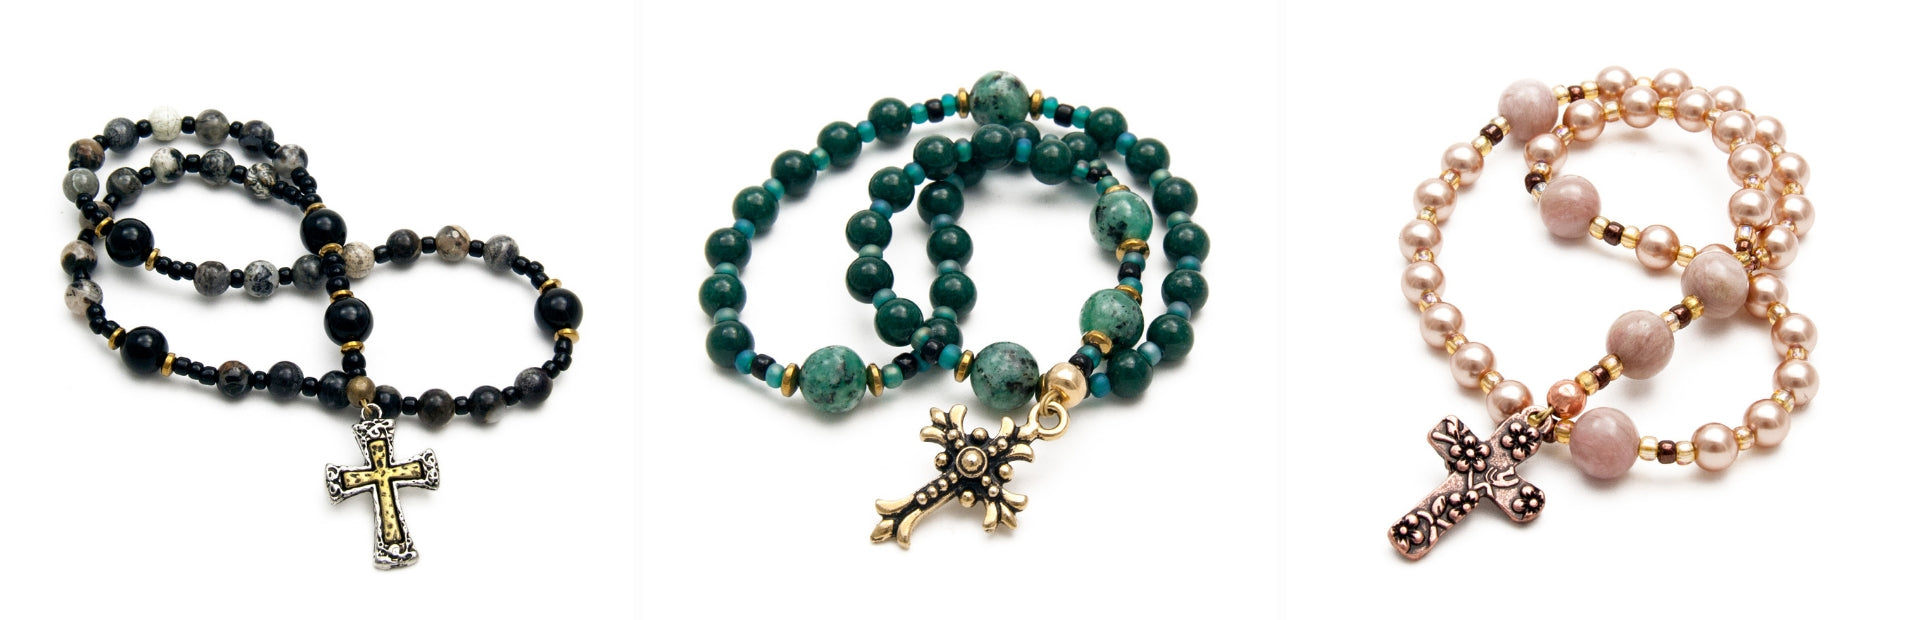 Anglican Prayer Beads by Unspoken Elements